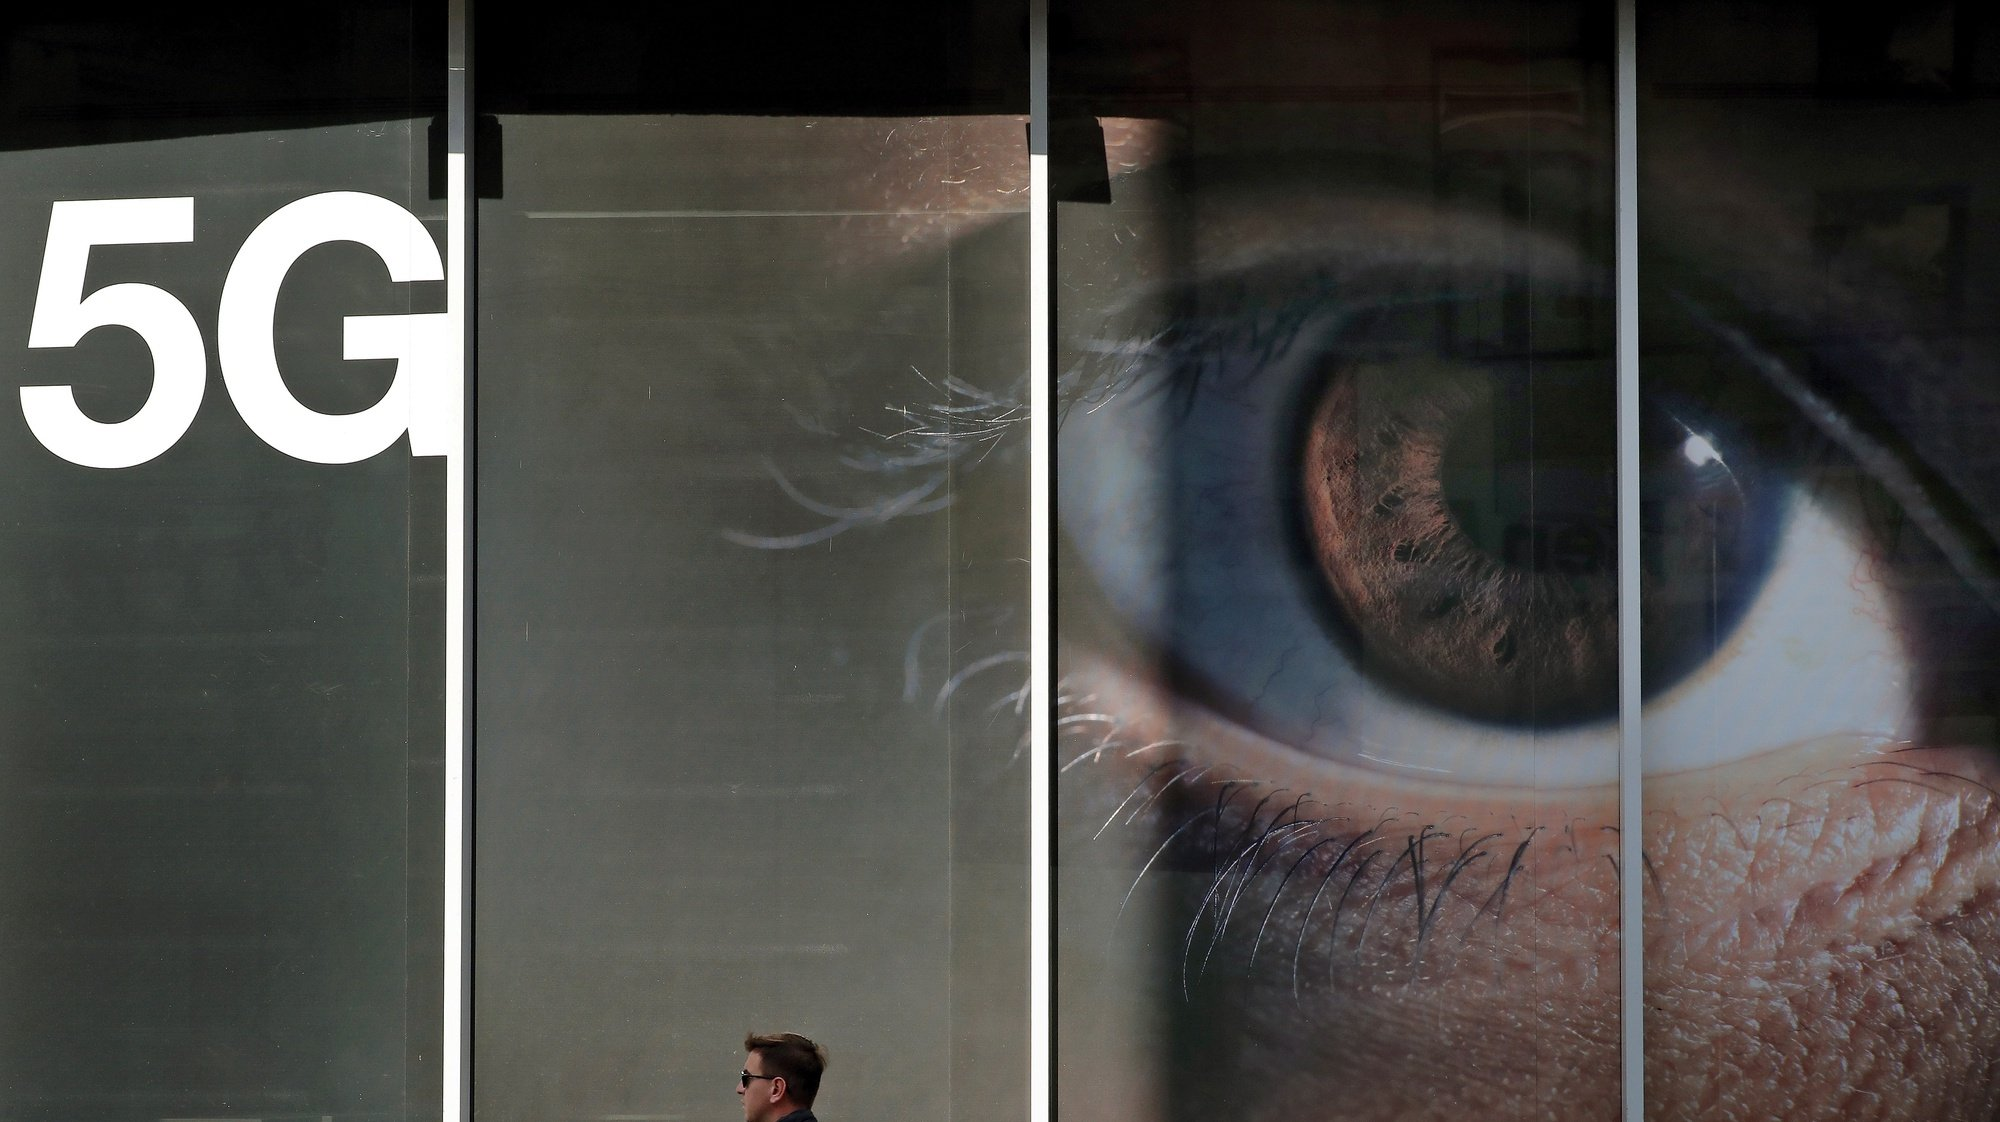 epaselect epa08757561 A Romanian man passes in front of a shop window of an Orange store that displays a huge 5G advertise banner, in Bucharest, Romania, 19 October 2020. Romania was among the first countries in the EU where local mobile communications operators launched commercial 5G services, through upgrades of 4G networks, using the radio spectrum they currently have in 2019, as The National Authority for Management and Regulation in Communications (ANCOM) failed to properly organize an auction for the rest of the frequency bands necessary for mobile operators to implement the 5G standard at the announced optimal parameters. The communication business sector is waiting for a new auction to be organized until the end of 2020. Mobile internet traffic is doubling in Romania every year.  EPA/ROBERT GHEMENT